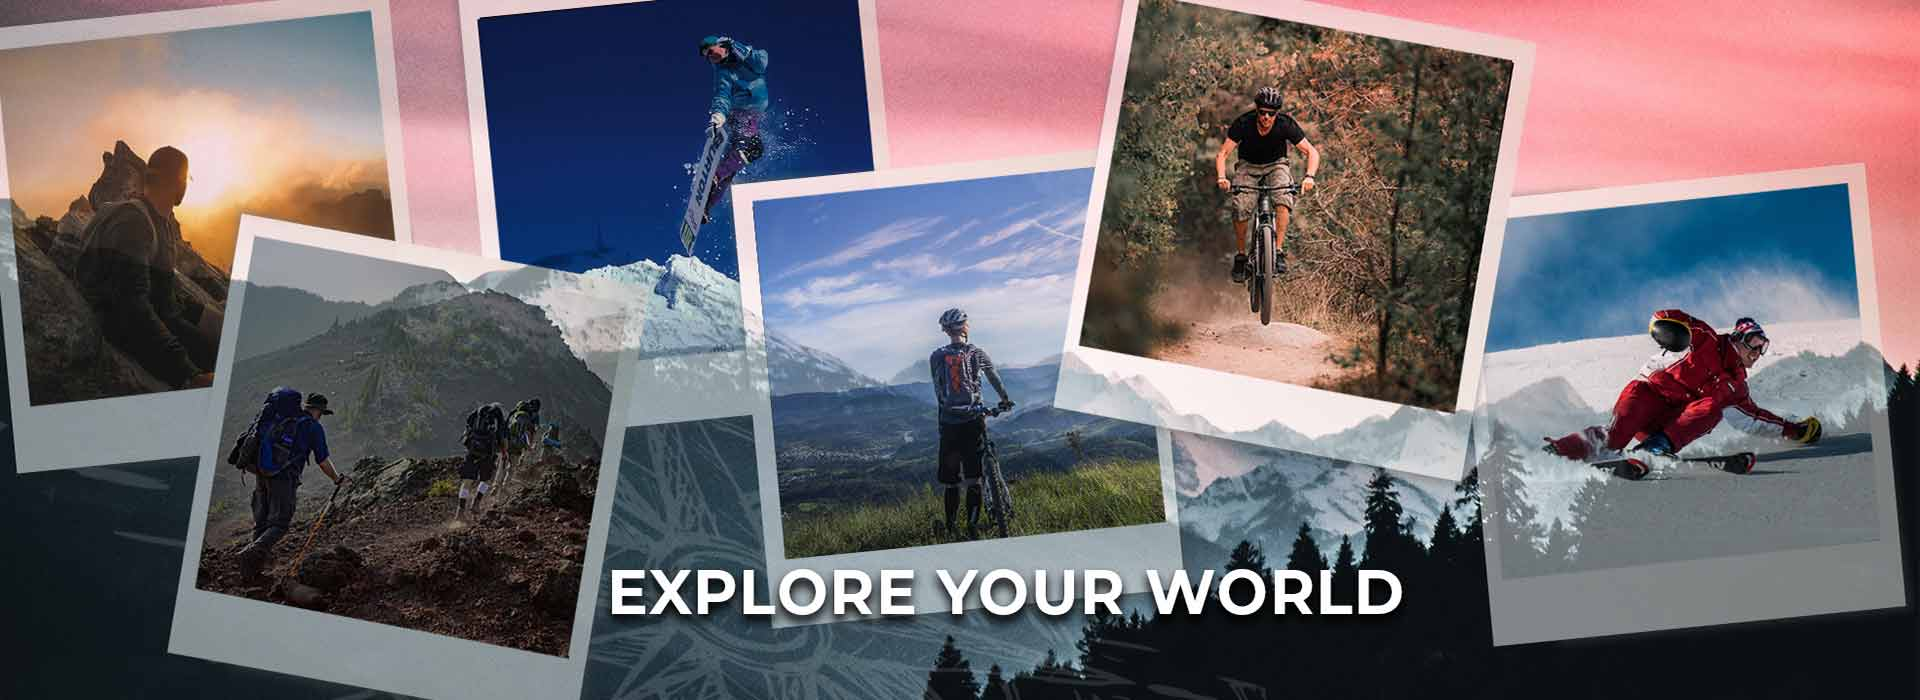 Explore your world!